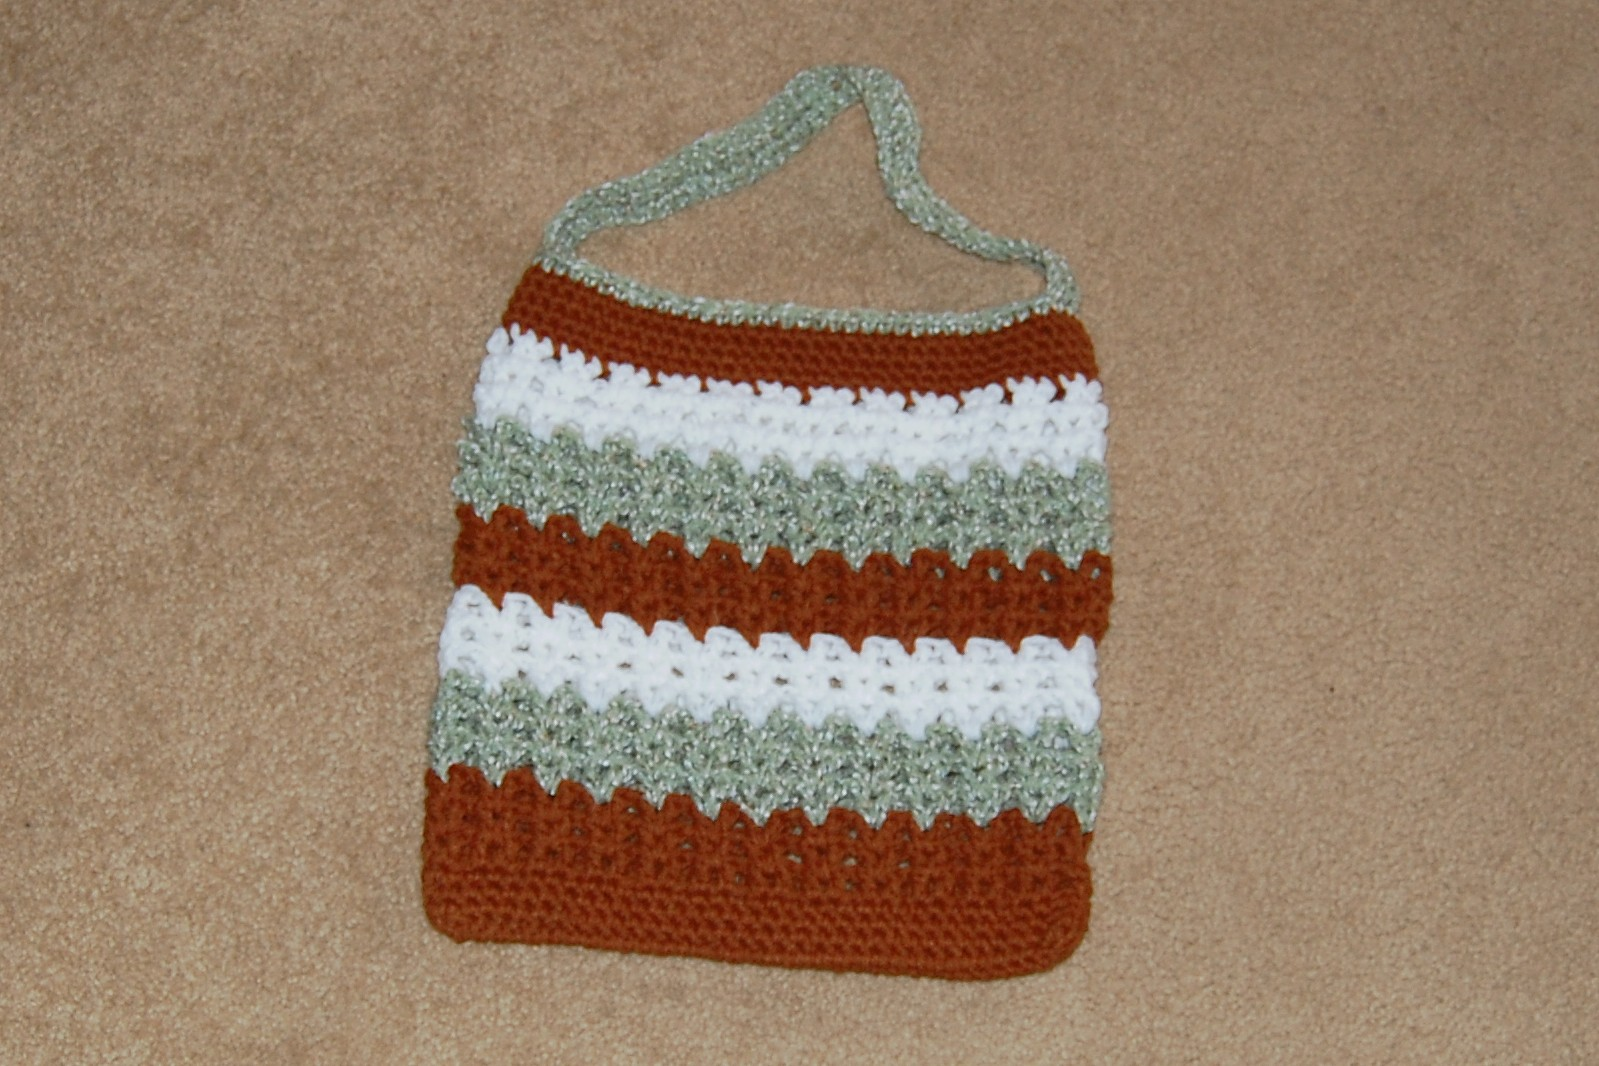 FREE CROCHET GROCERY BAG PATTERN - Crochet and Knitting Patterns